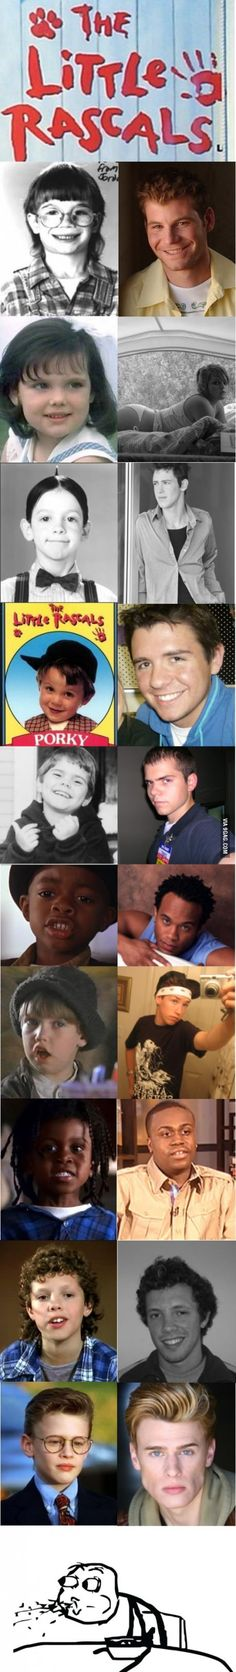 The Little Rascals (Then & Now) I still think some of them were cuter back then! :) hahaha